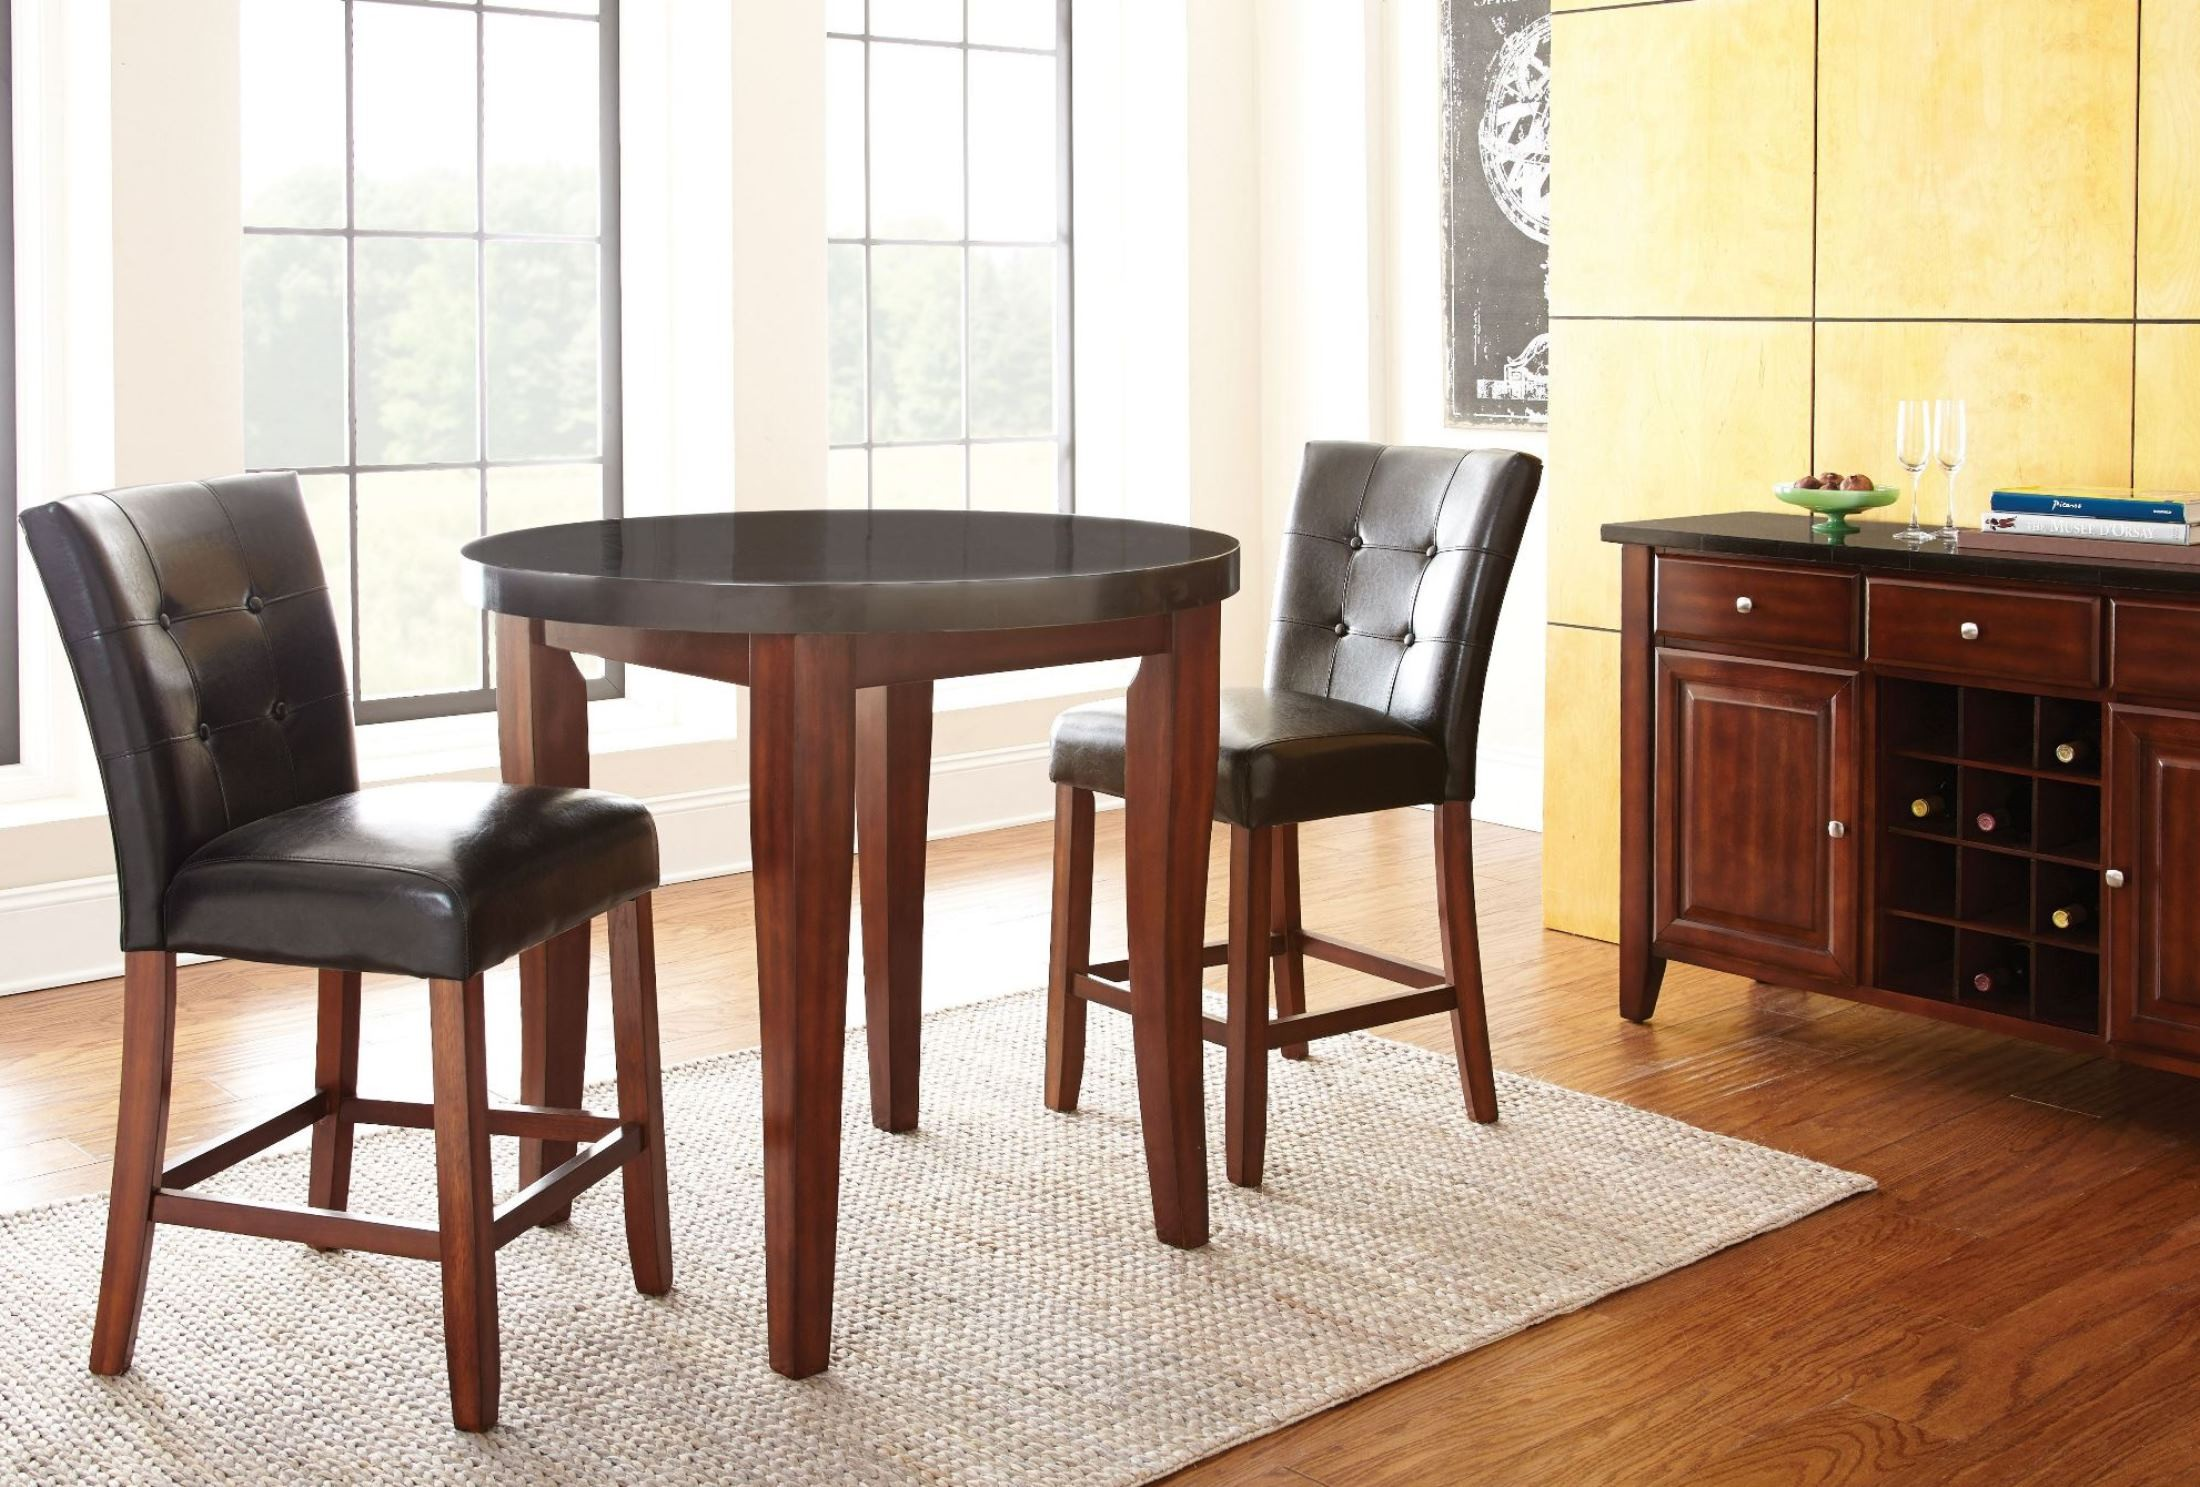 Granite Bello Round Counter Height Dining Room Set From Steve Silver MG600PT